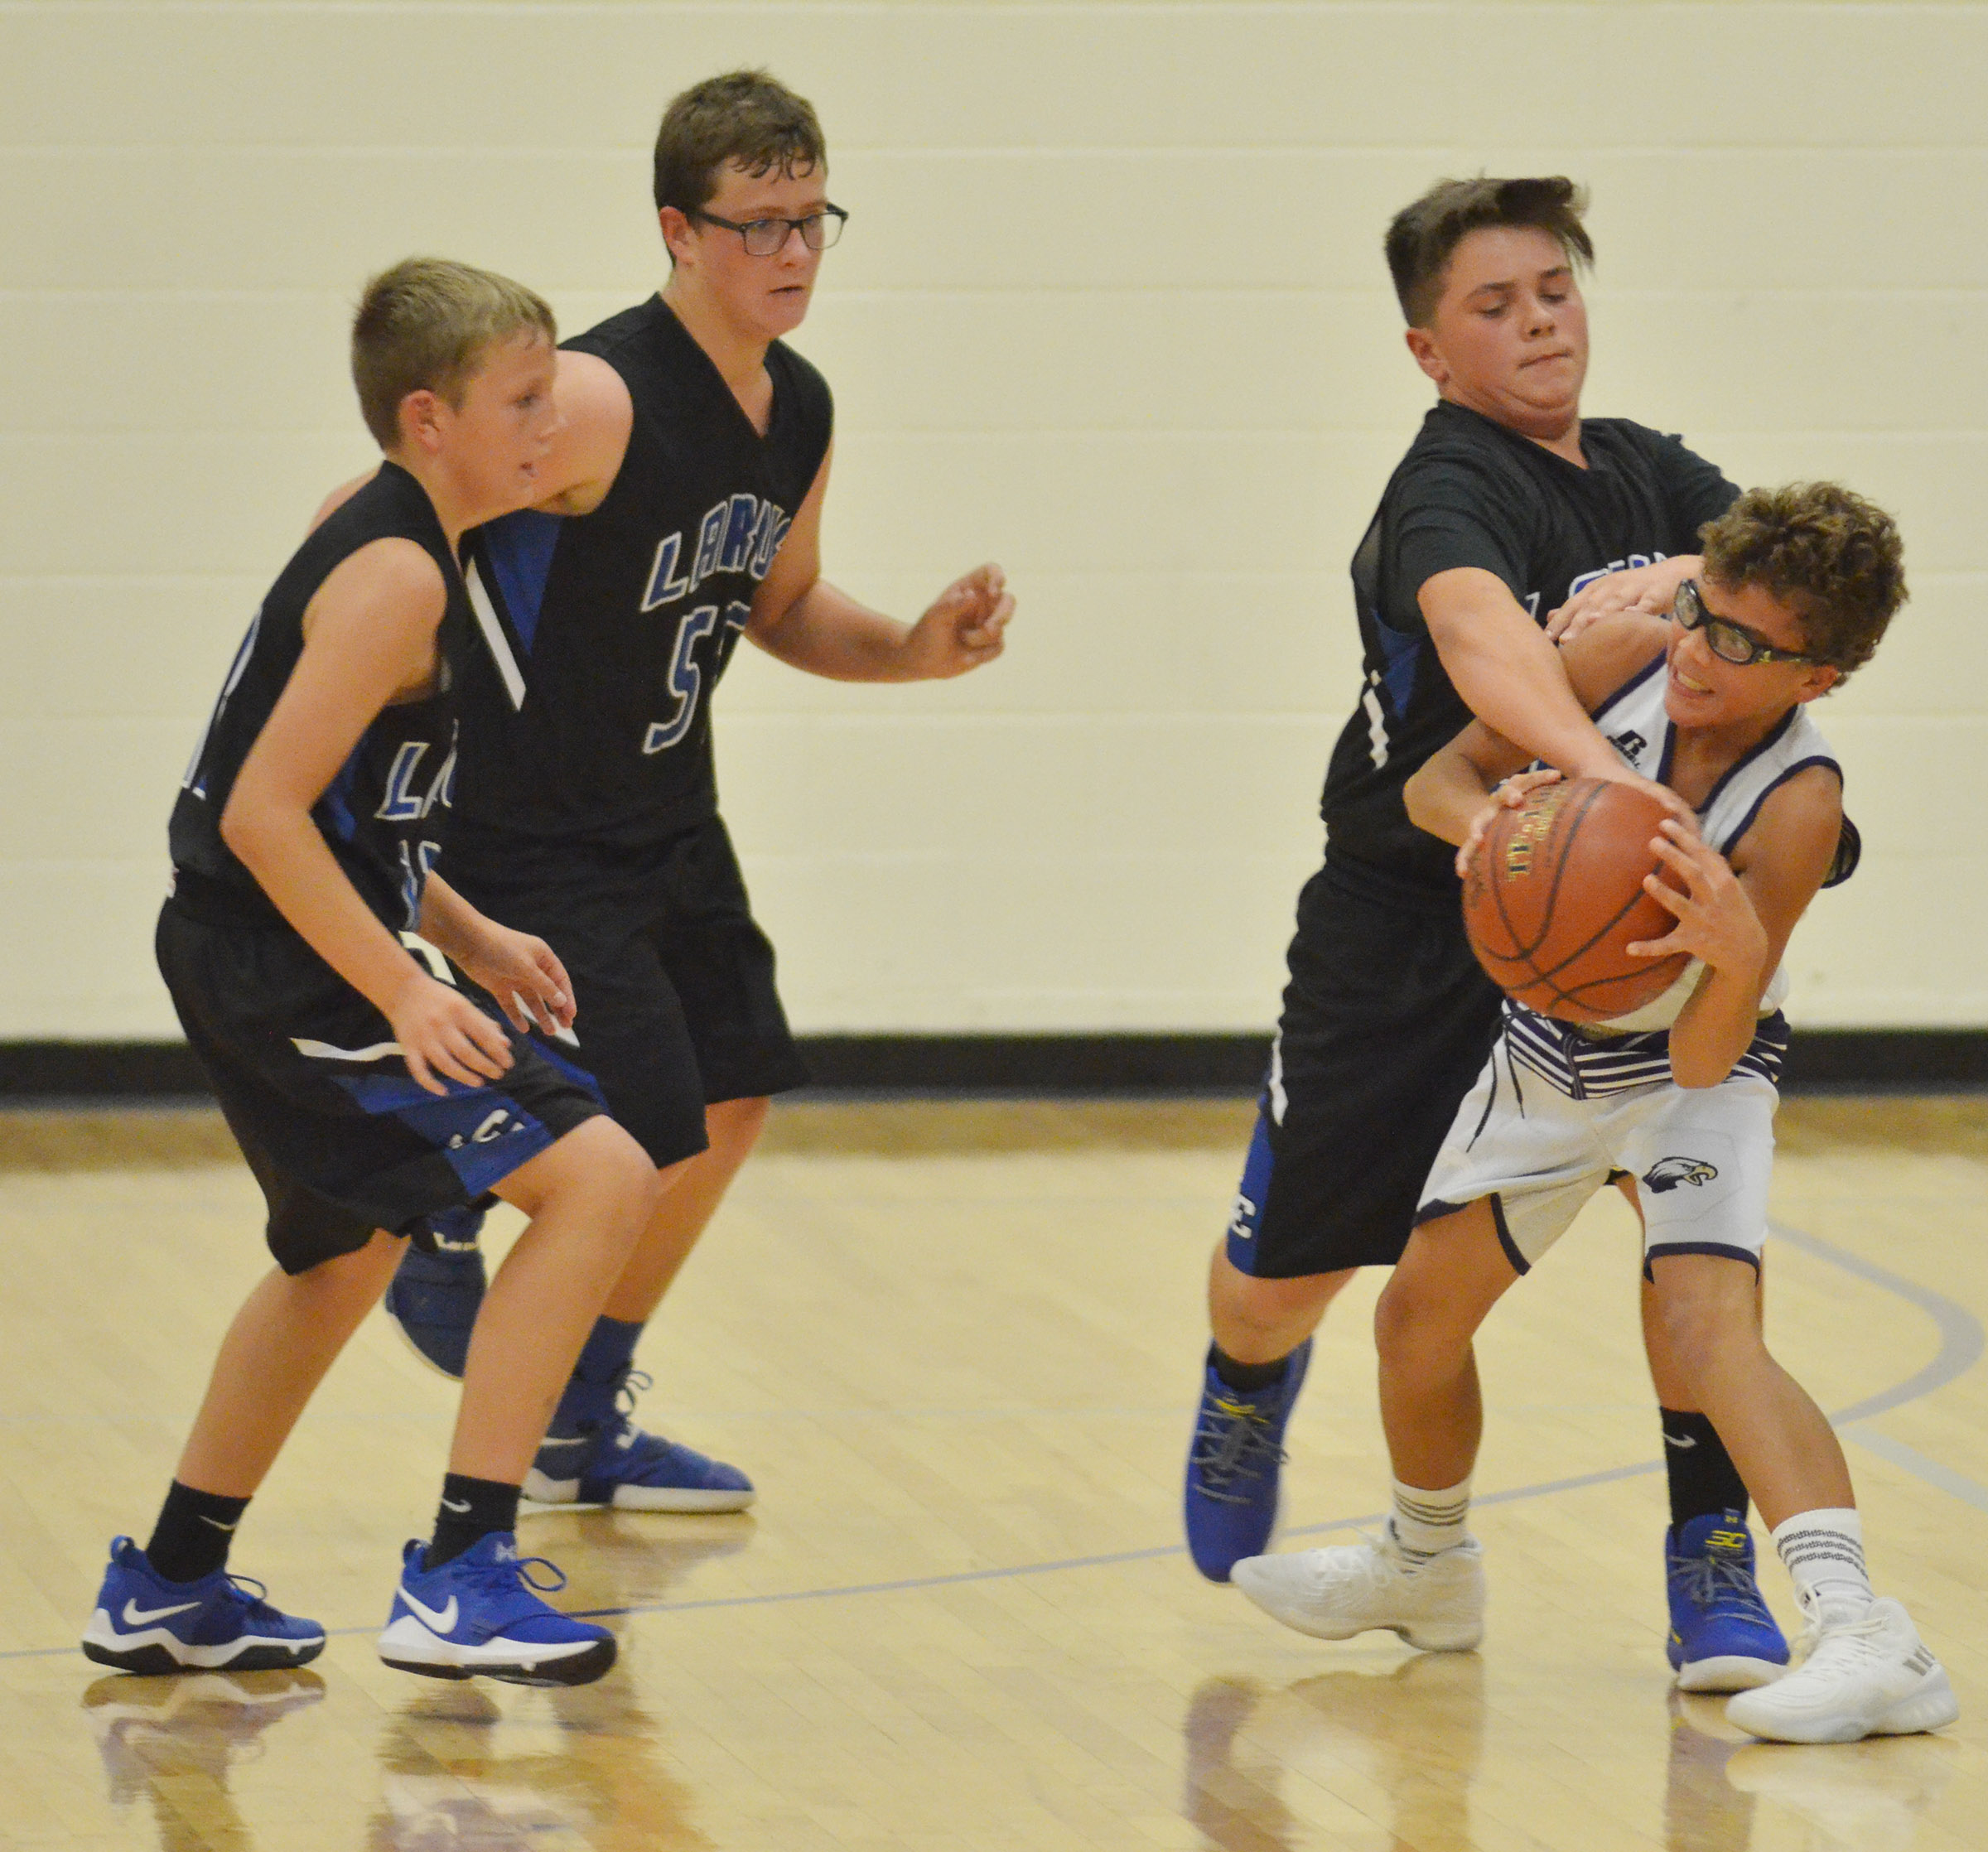 CMS eighth-grader Logan Phillips protects the ball.